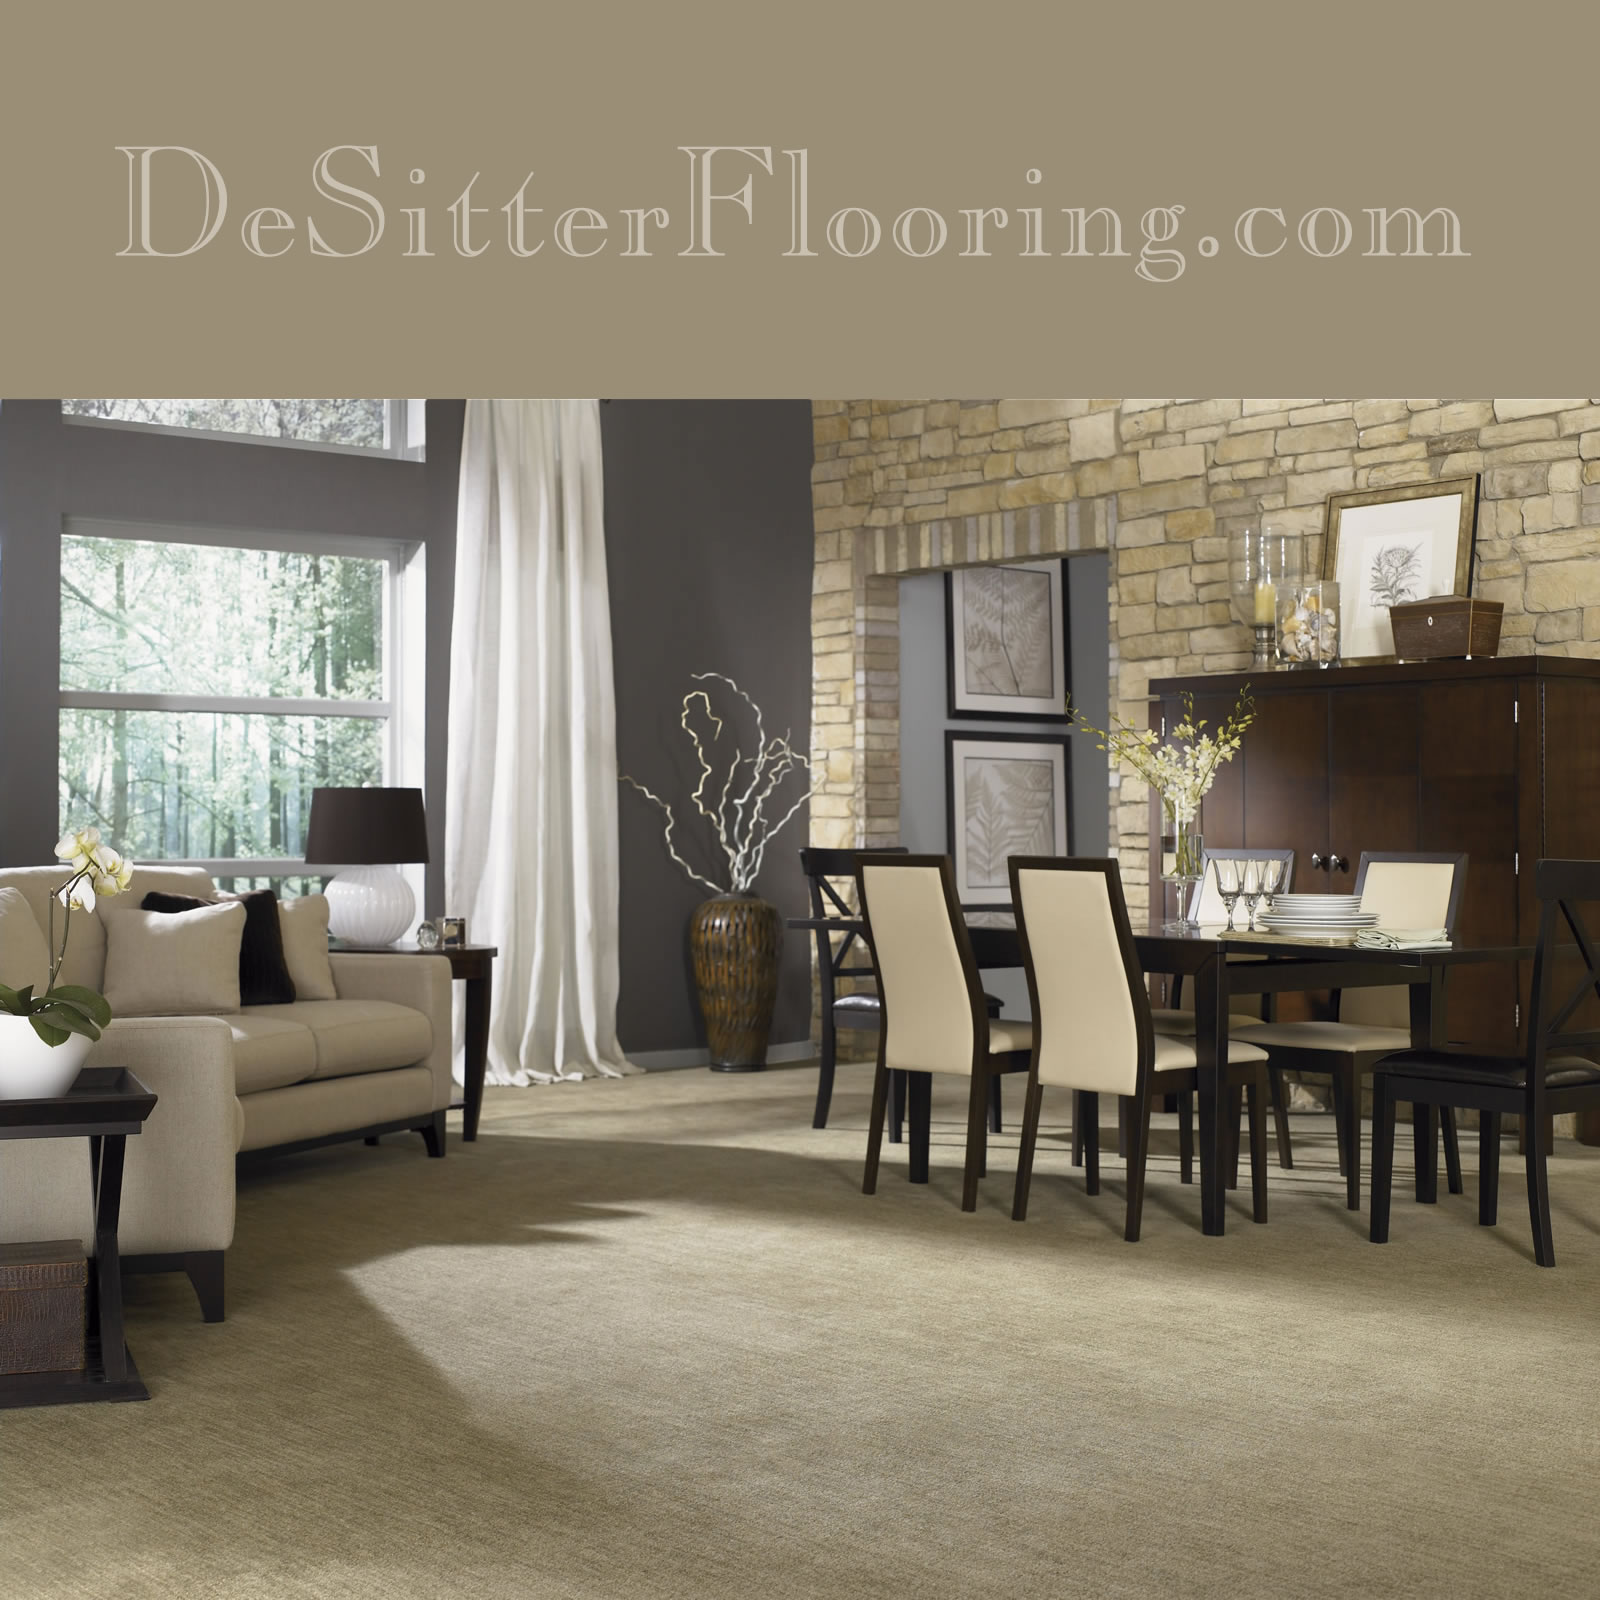 New carpet installation in st charles 60175 desitter flooring desitter flooring carries a brilliant mix of carpet styles ideal for any home for a free estimate call 630 948 5582 or contact us online tyukafo